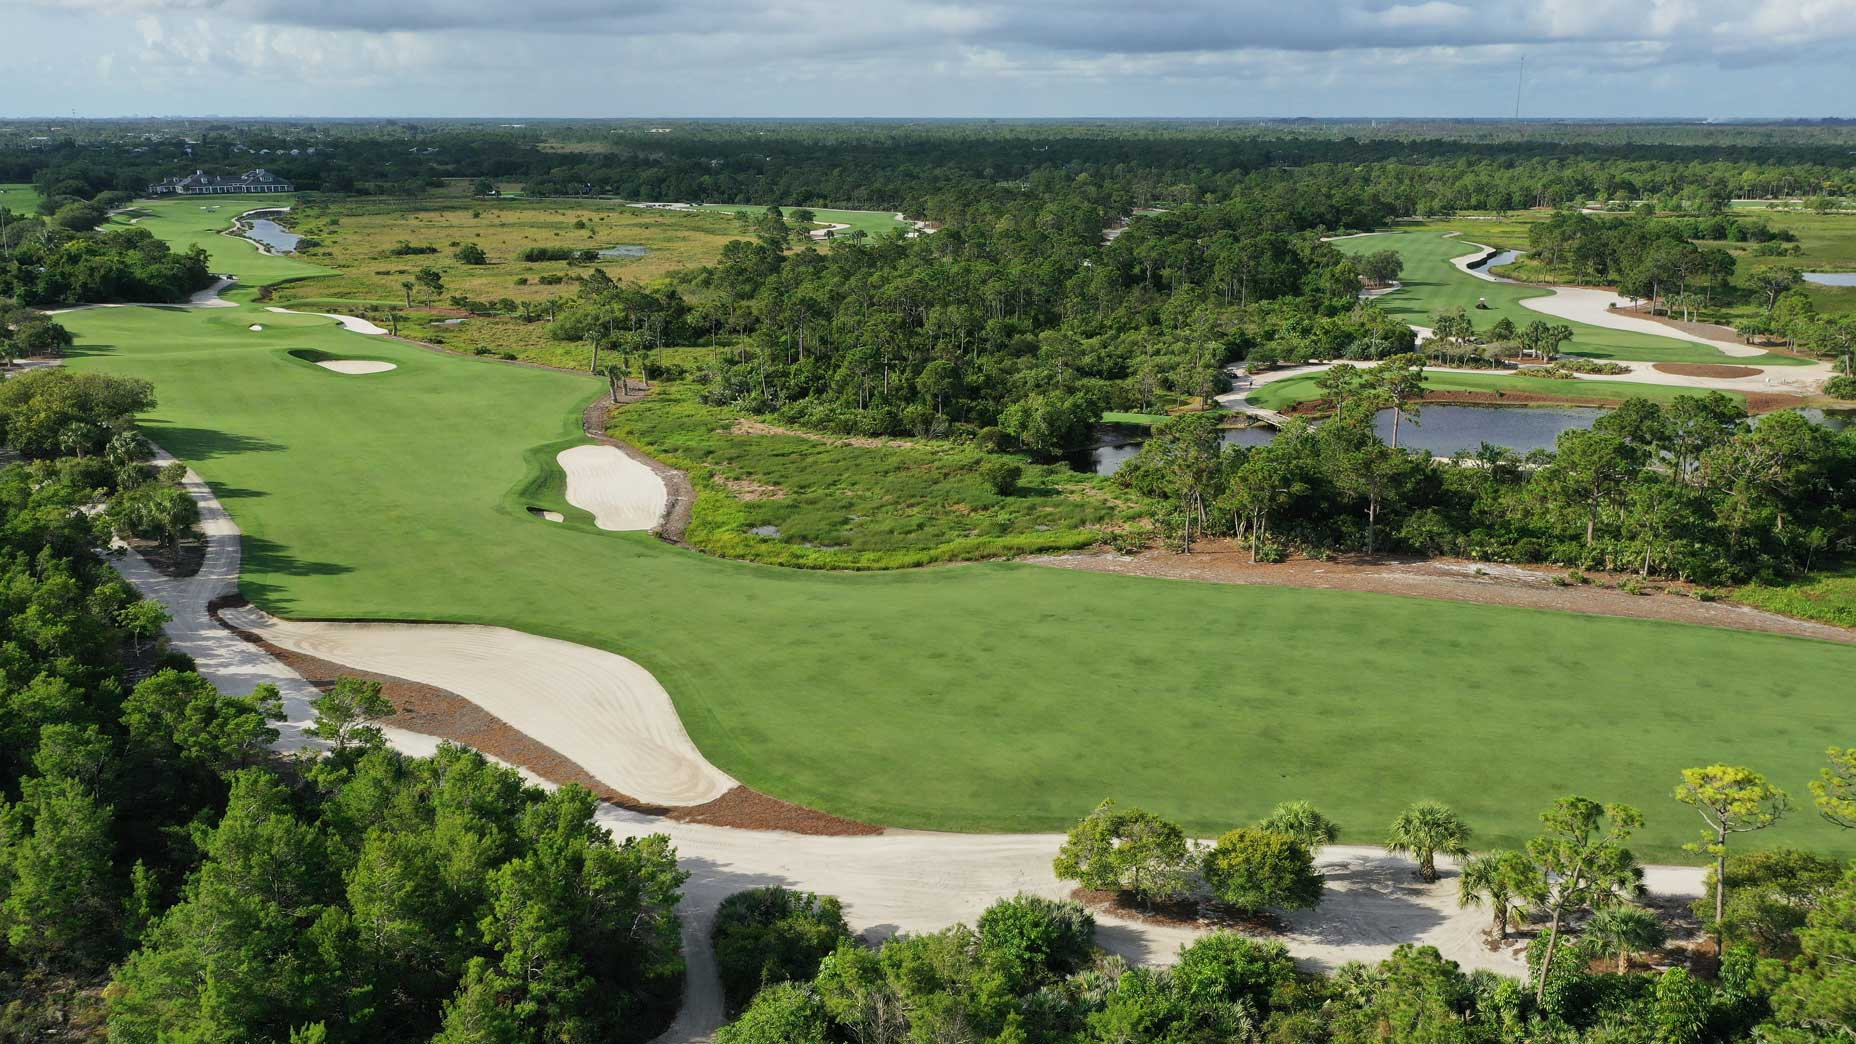 An aerial drone view of the 17th hole at Medalist Golf Club.